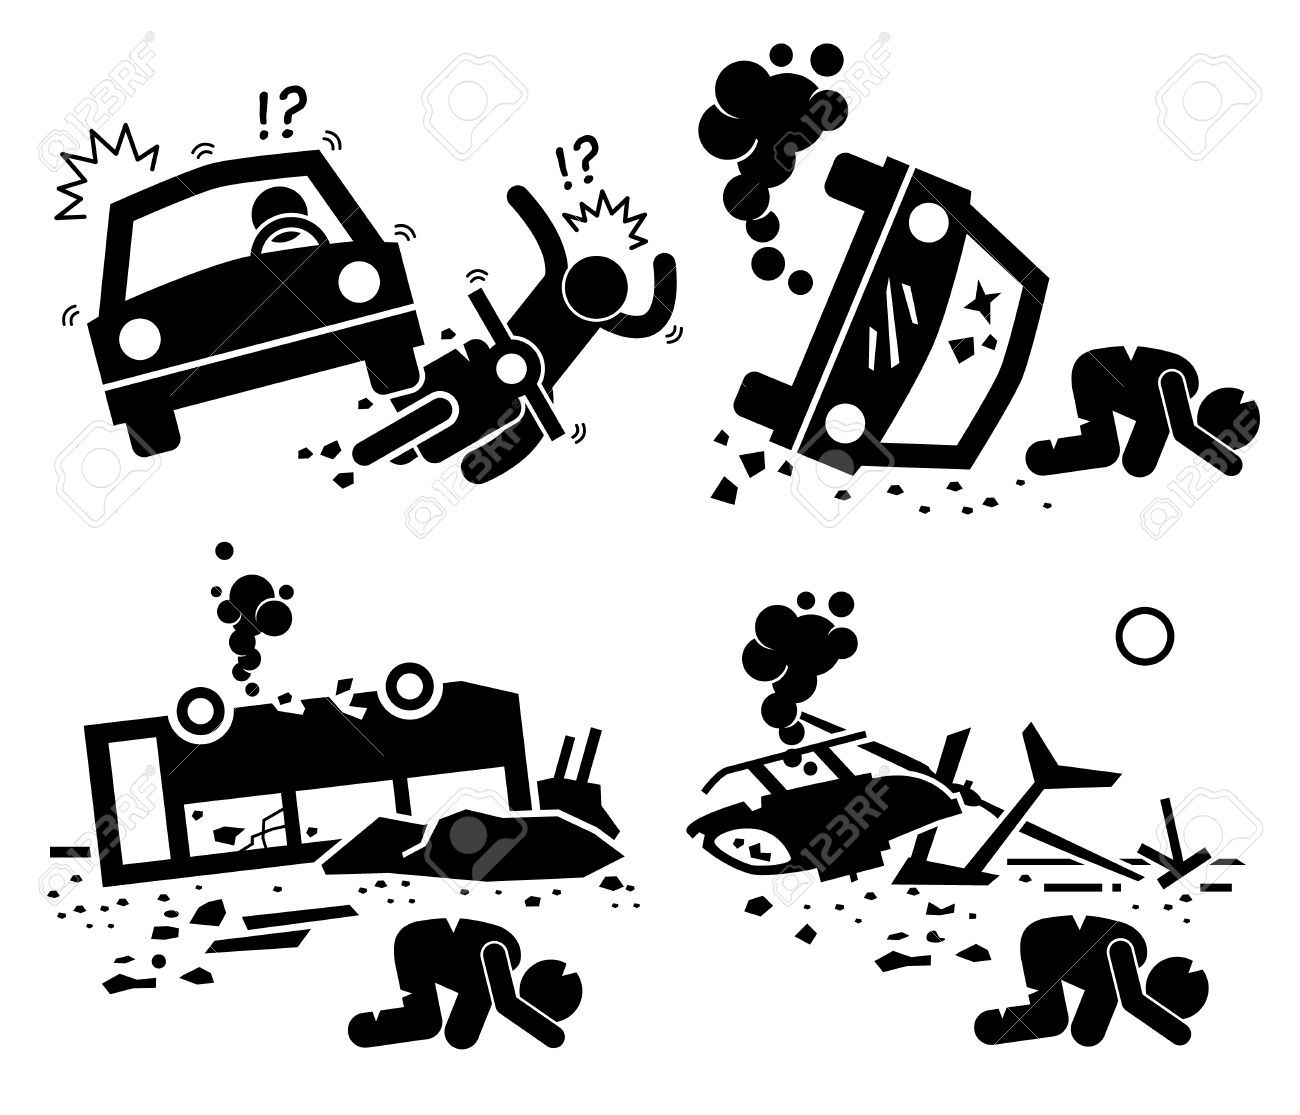 Disaster Accident Tragedy Of Car Motorcycle Collision, Bus